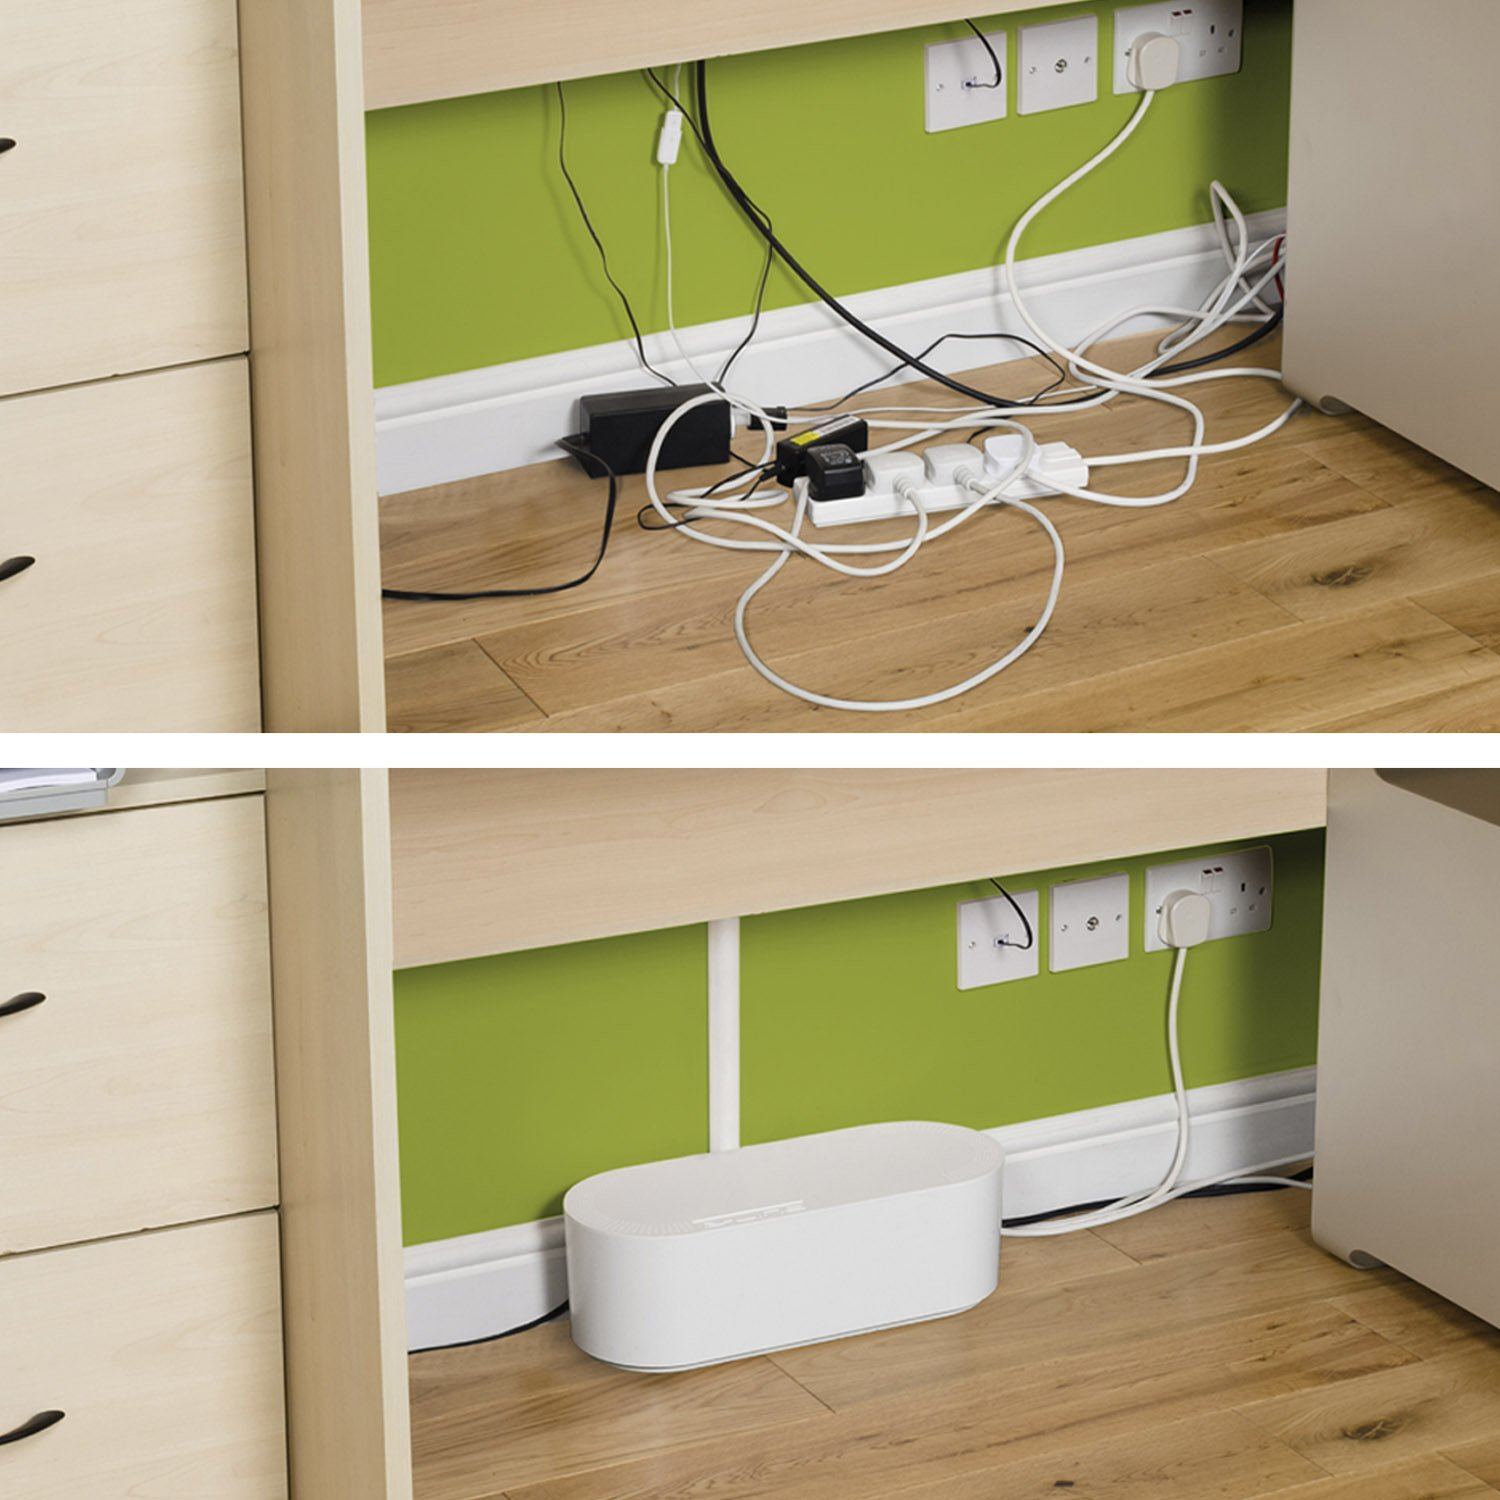 gaming setup ideas for small rooms: 5 hacks